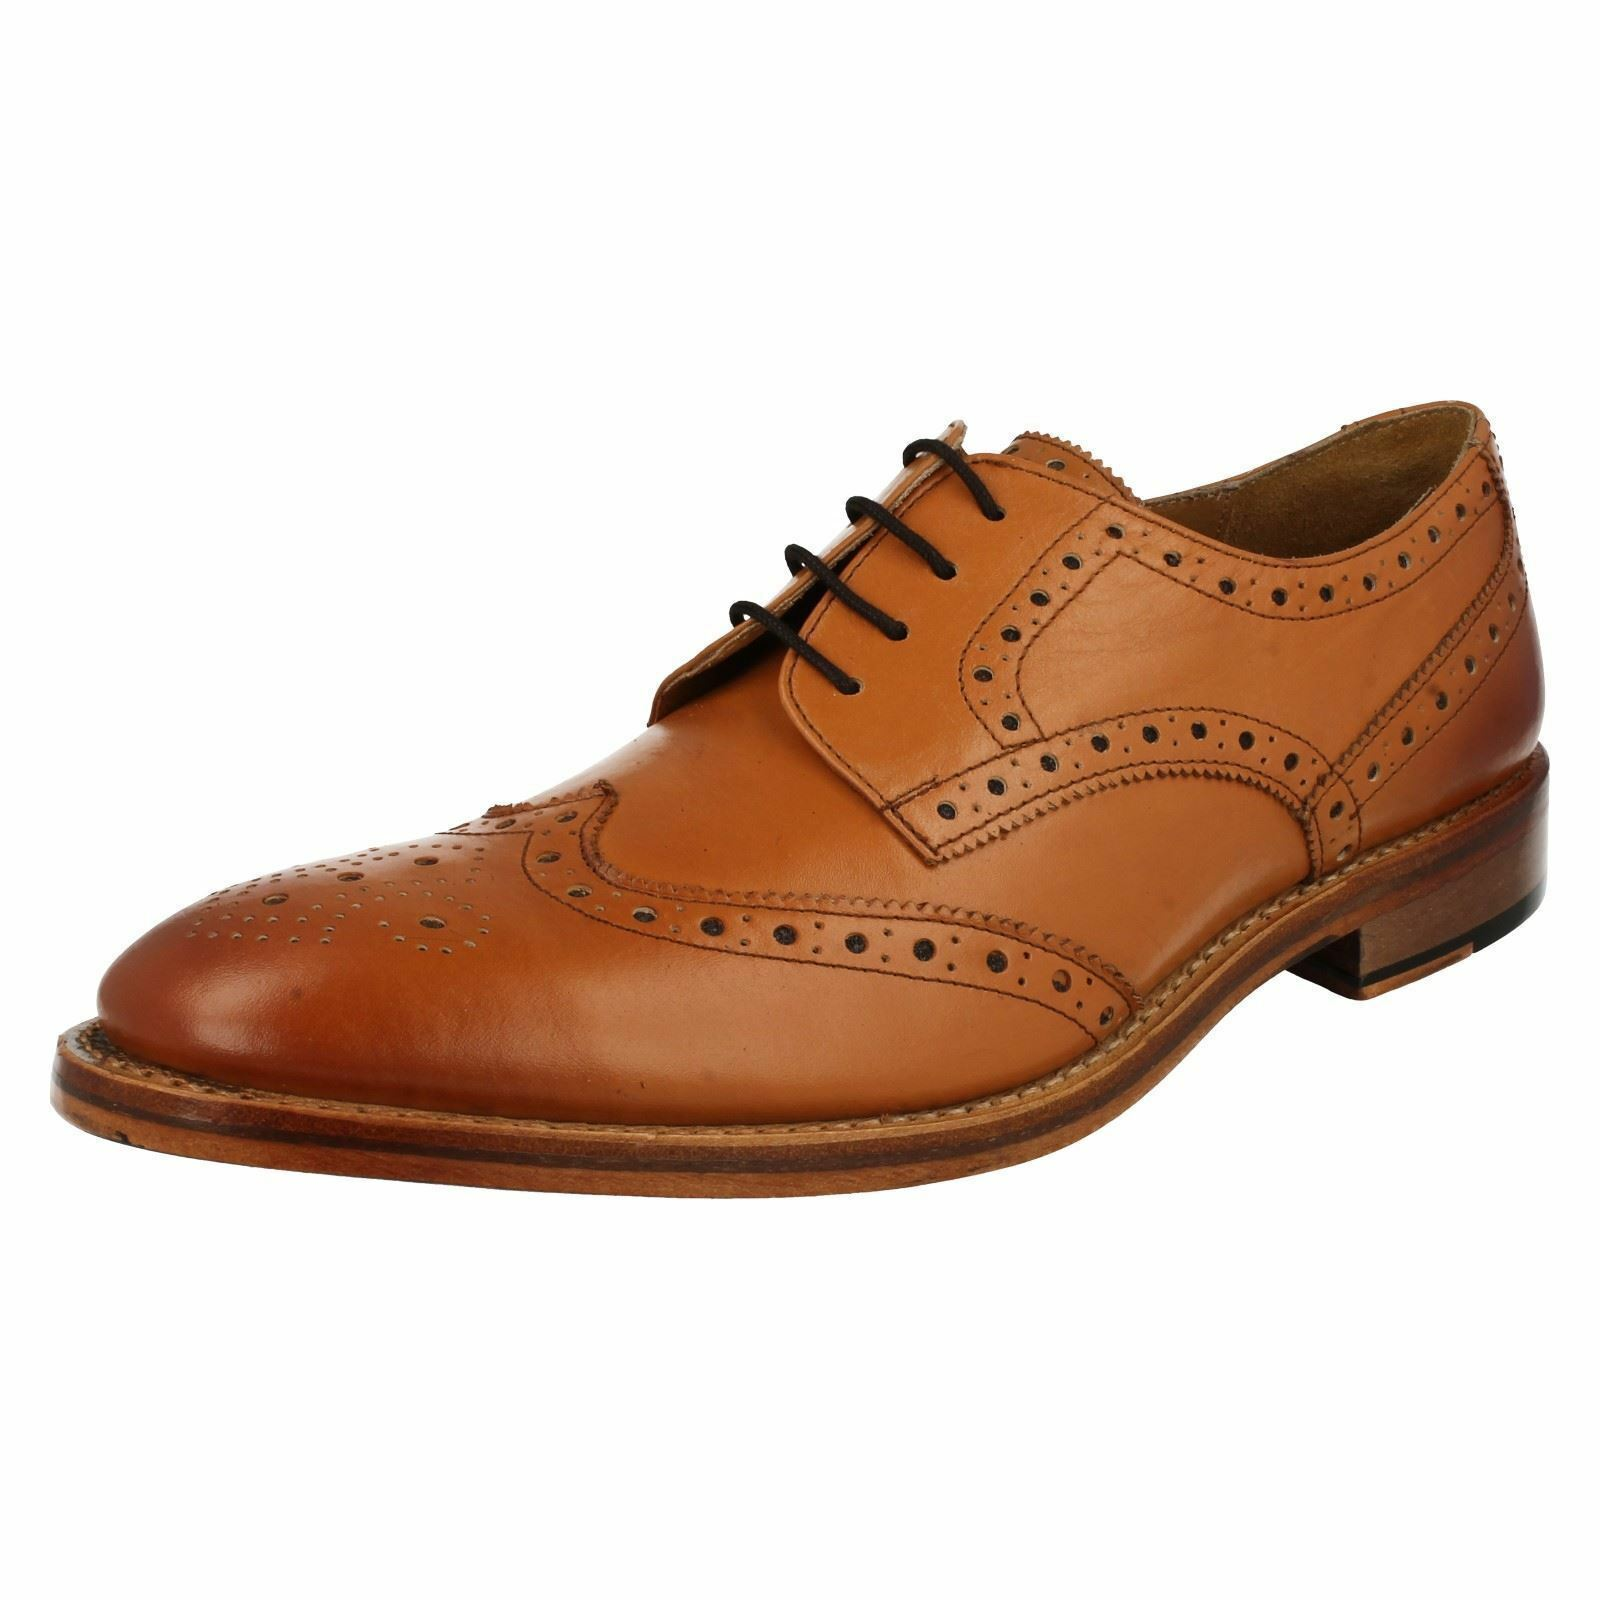 Catesby 'Surrey' Mens Formal Brogues in Tan Leather with a Goodyear Sole